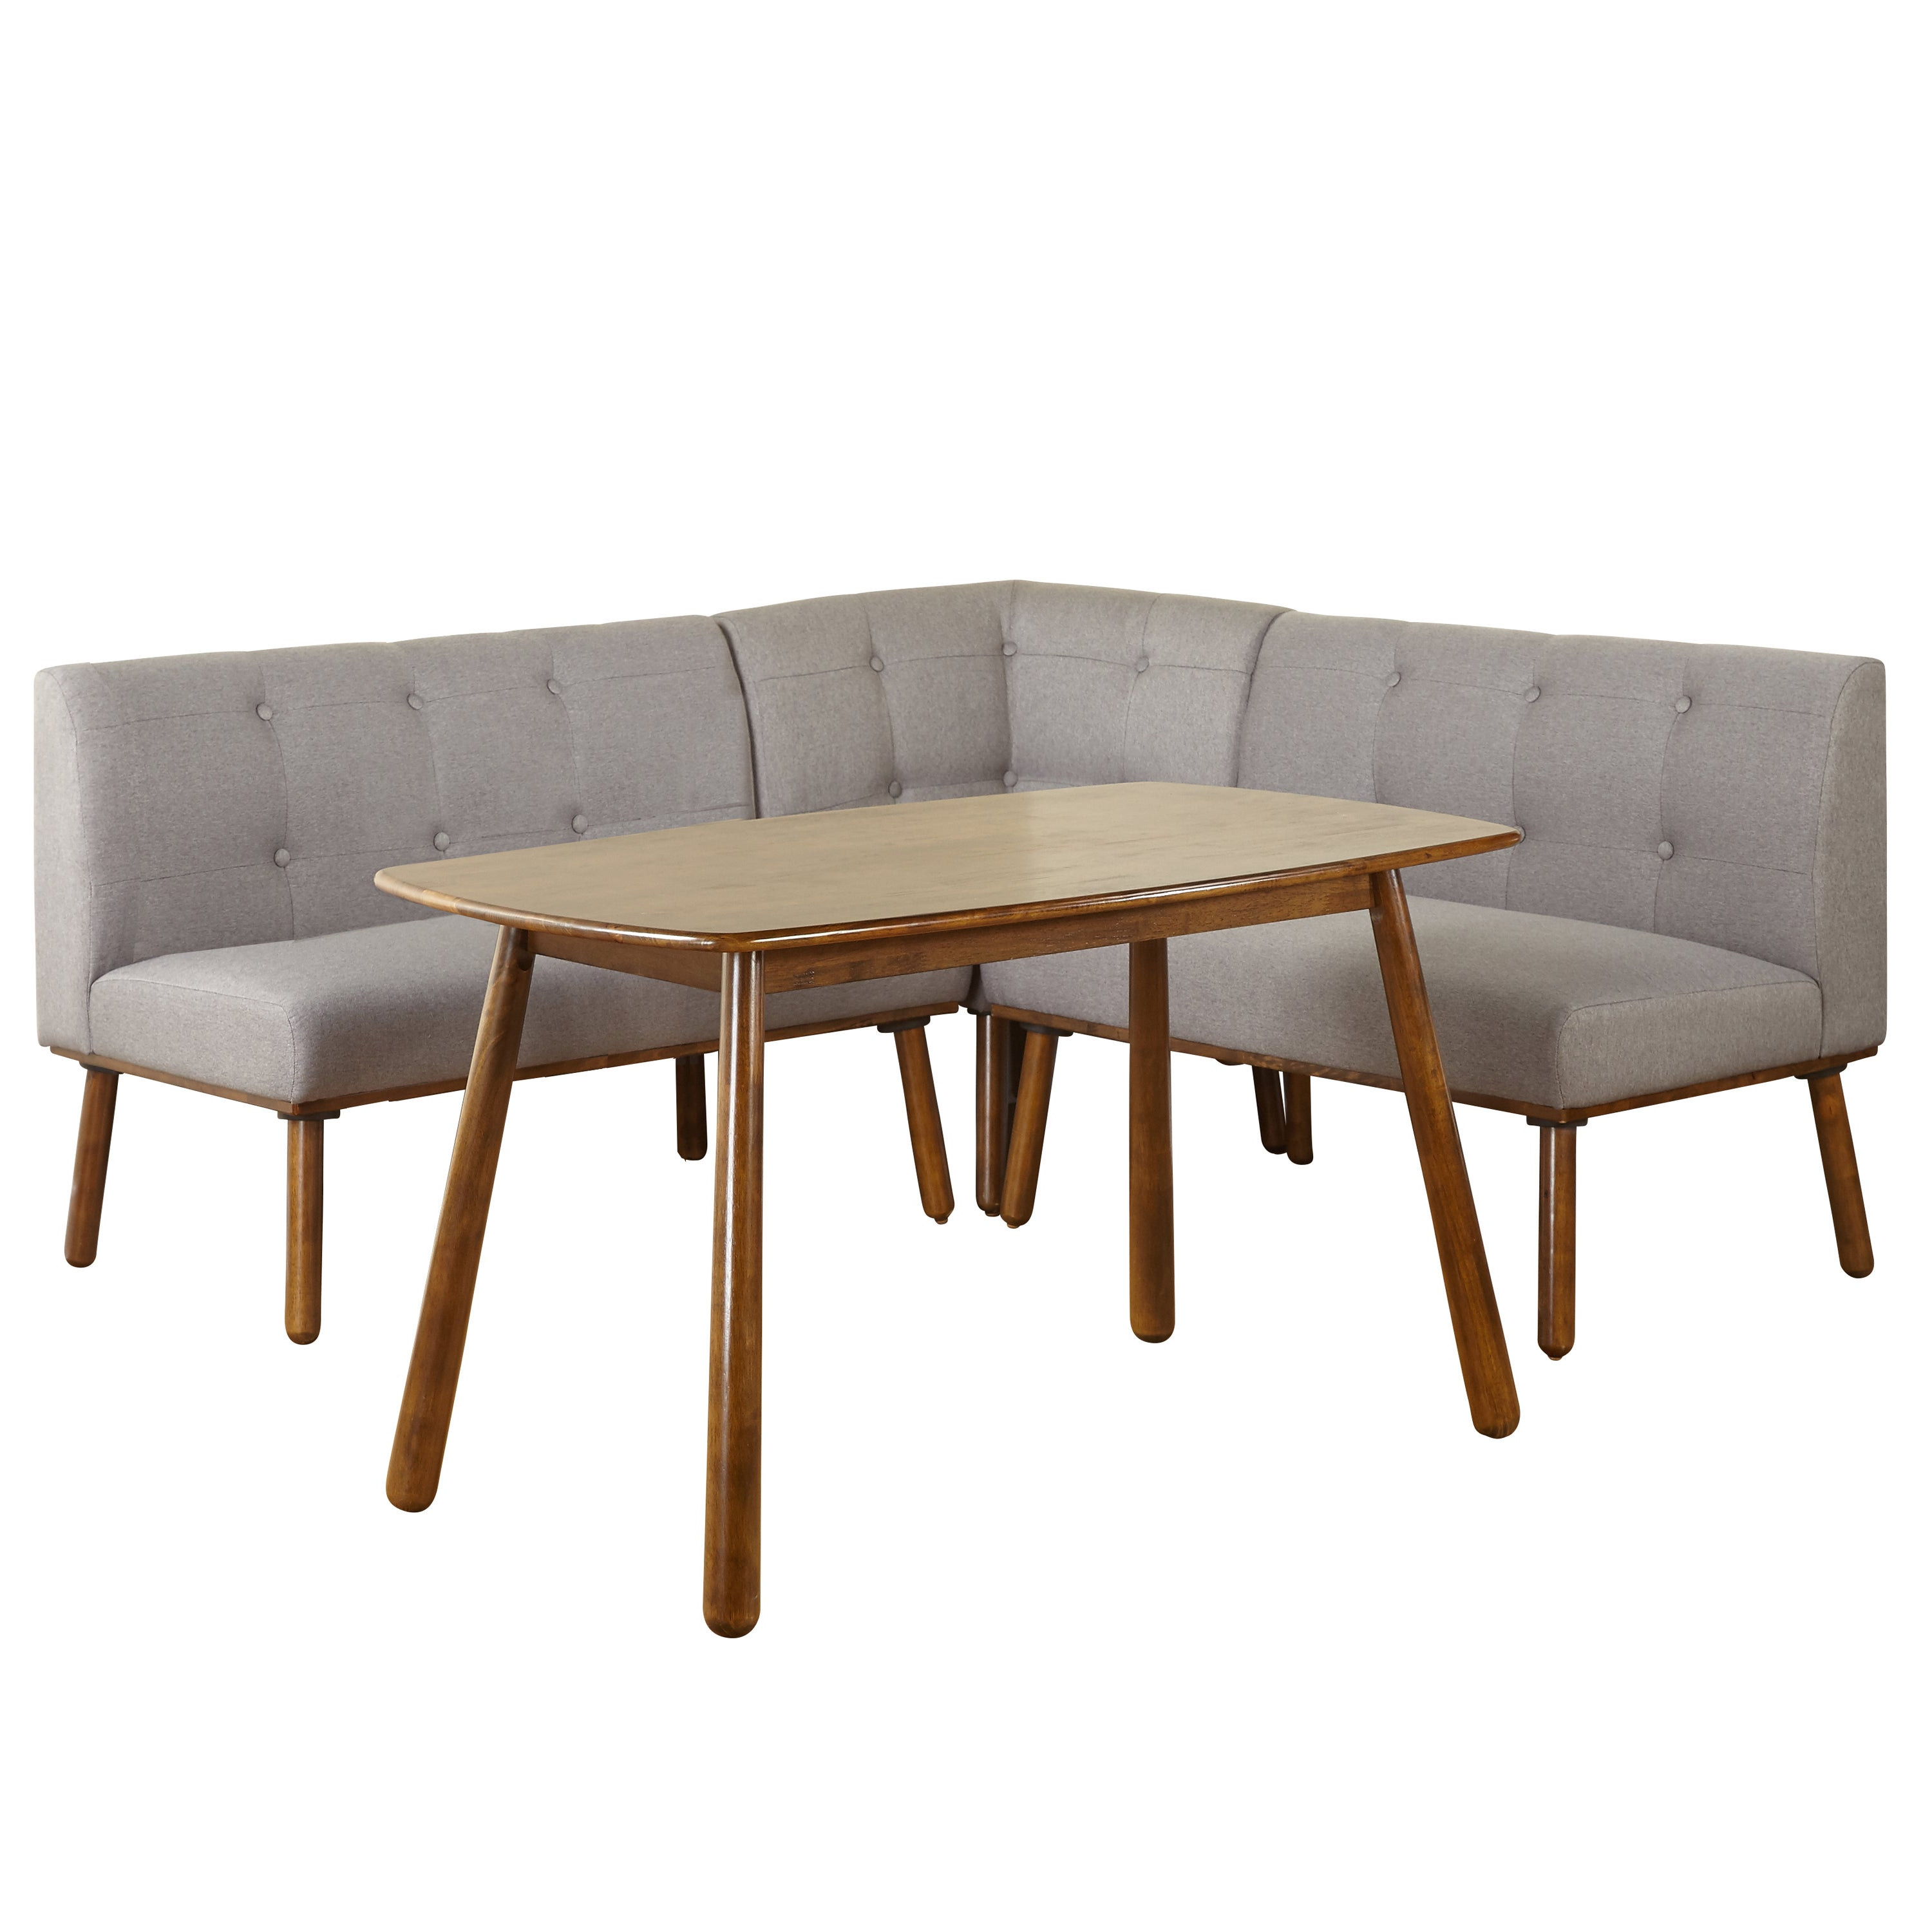 Recent Shop Simple Living 4 Piece Playmate Nook Dining Set - On Sale - Free for Maloney 3 Piece Breakfast Nook Dining Sets